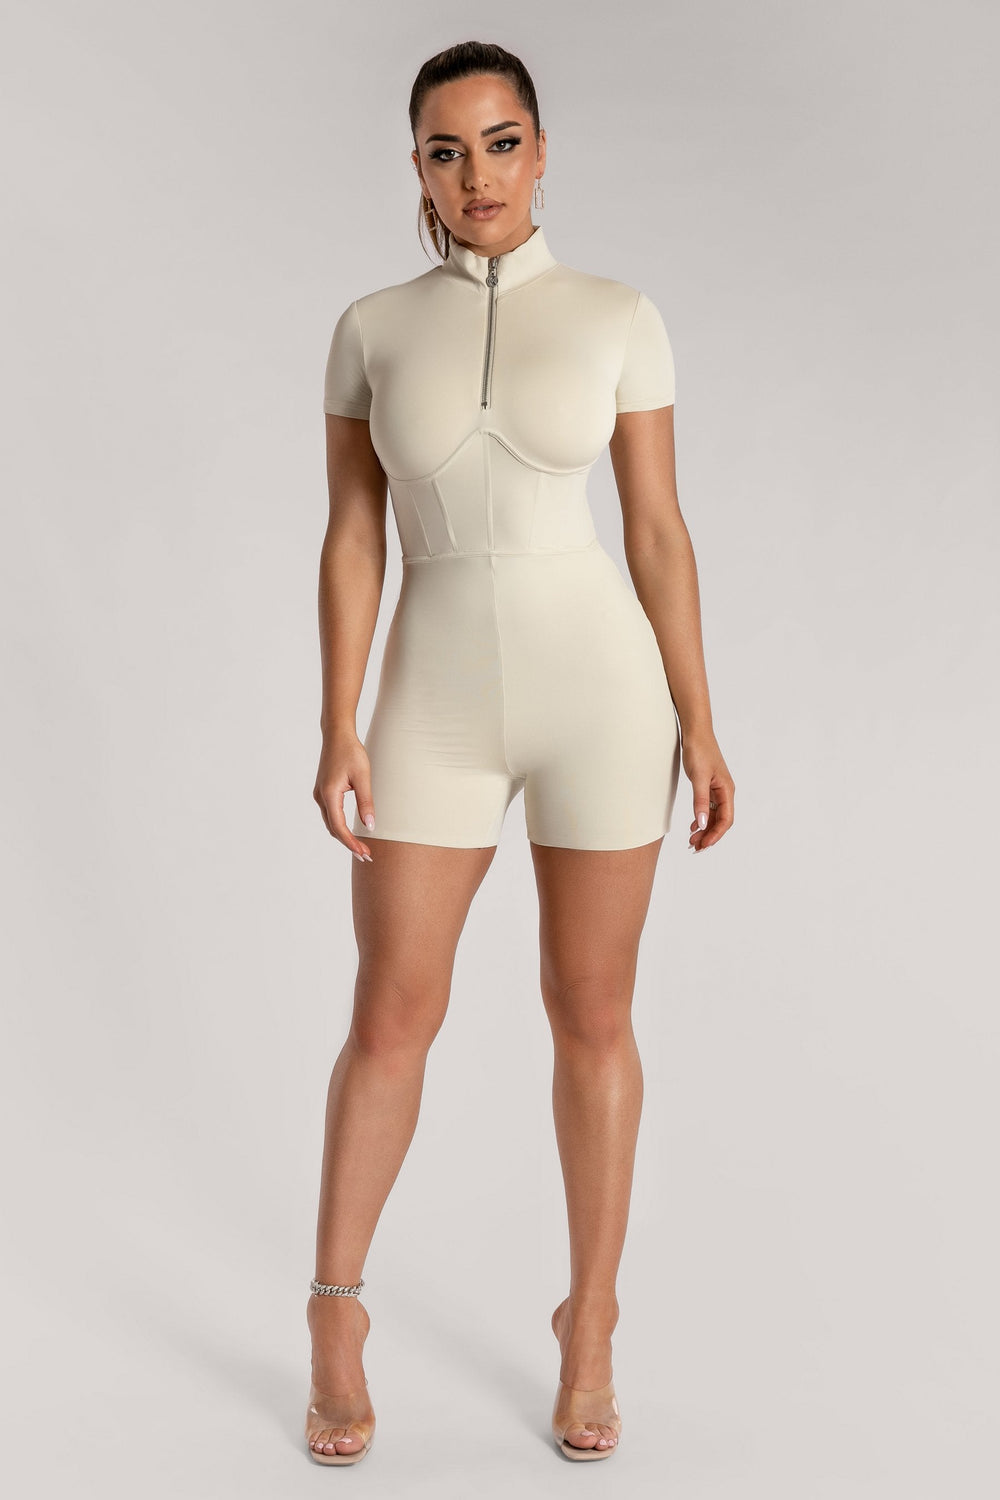 Zahiah Corsetted Short Sleeve Playsuit - Sand - MESHKI ?id=15950311161931